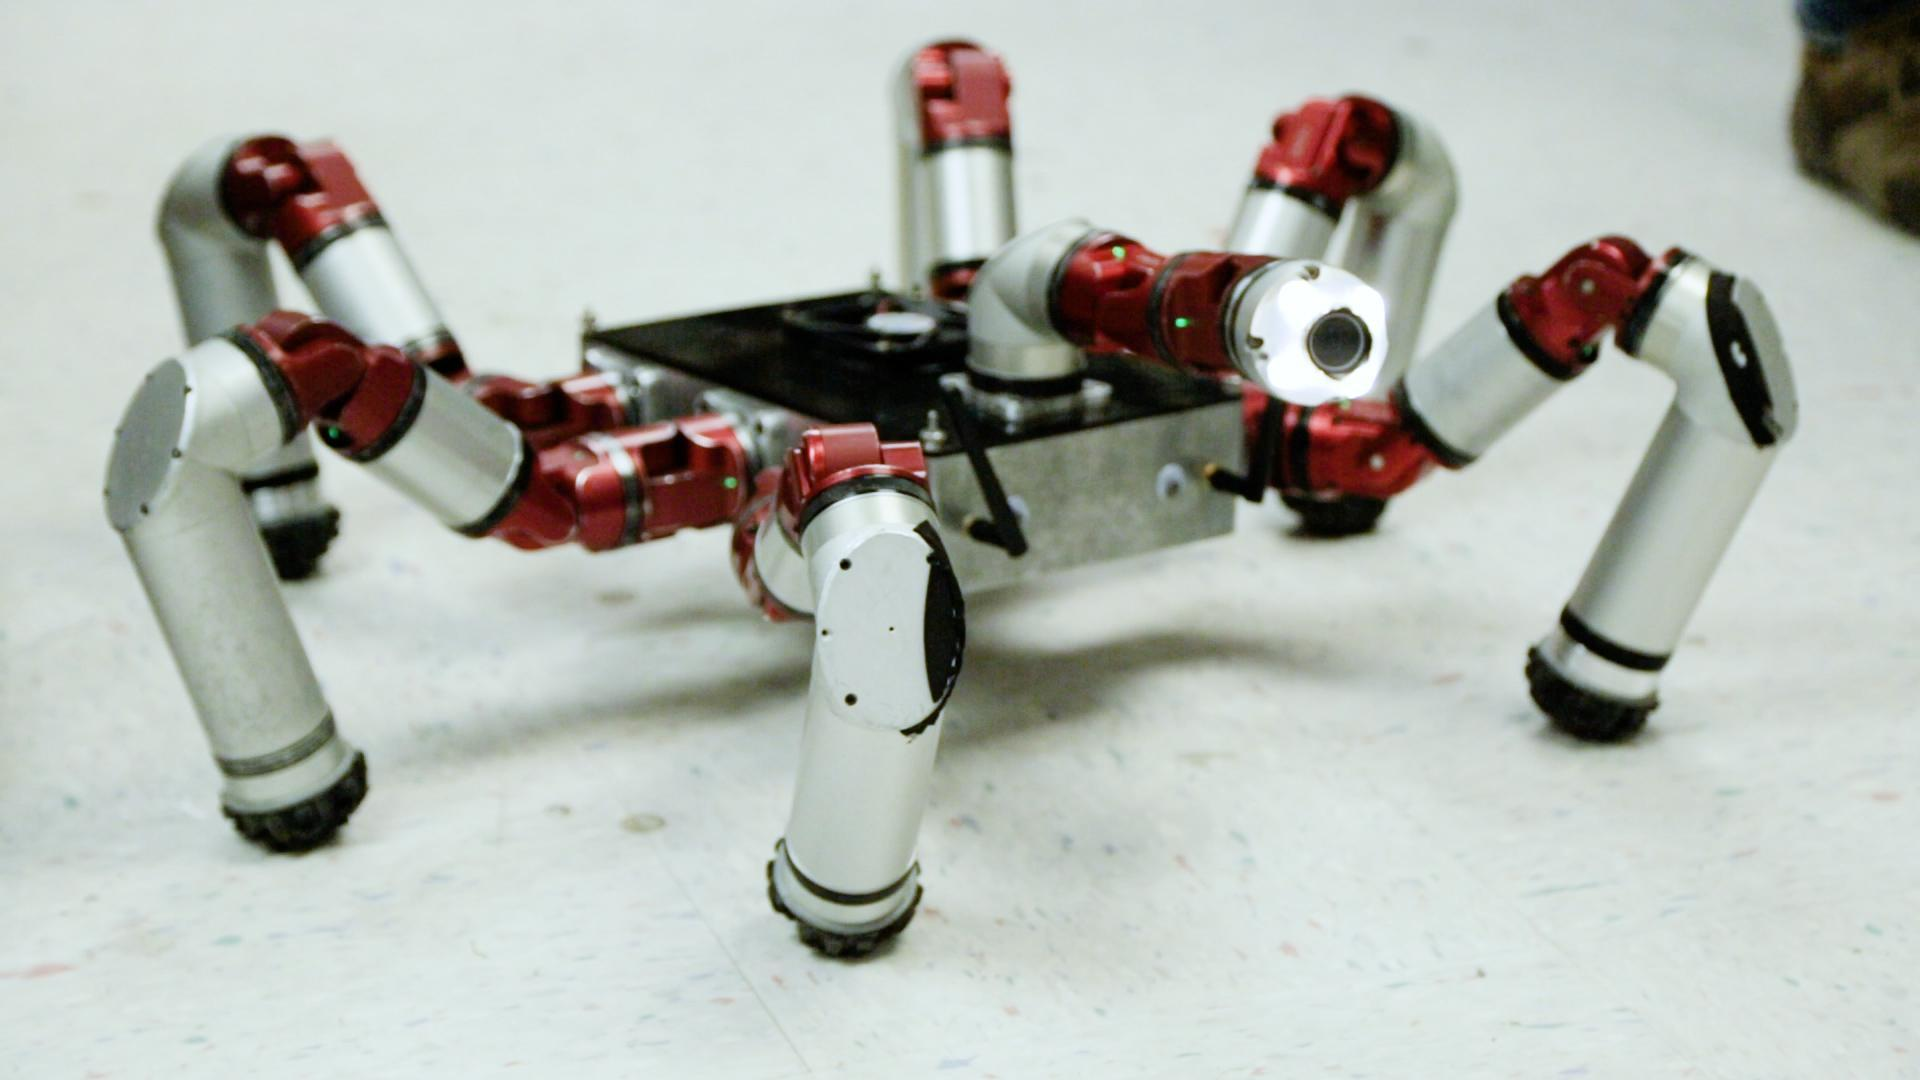 Carnegie Mellon's snake robot is inspired by nature